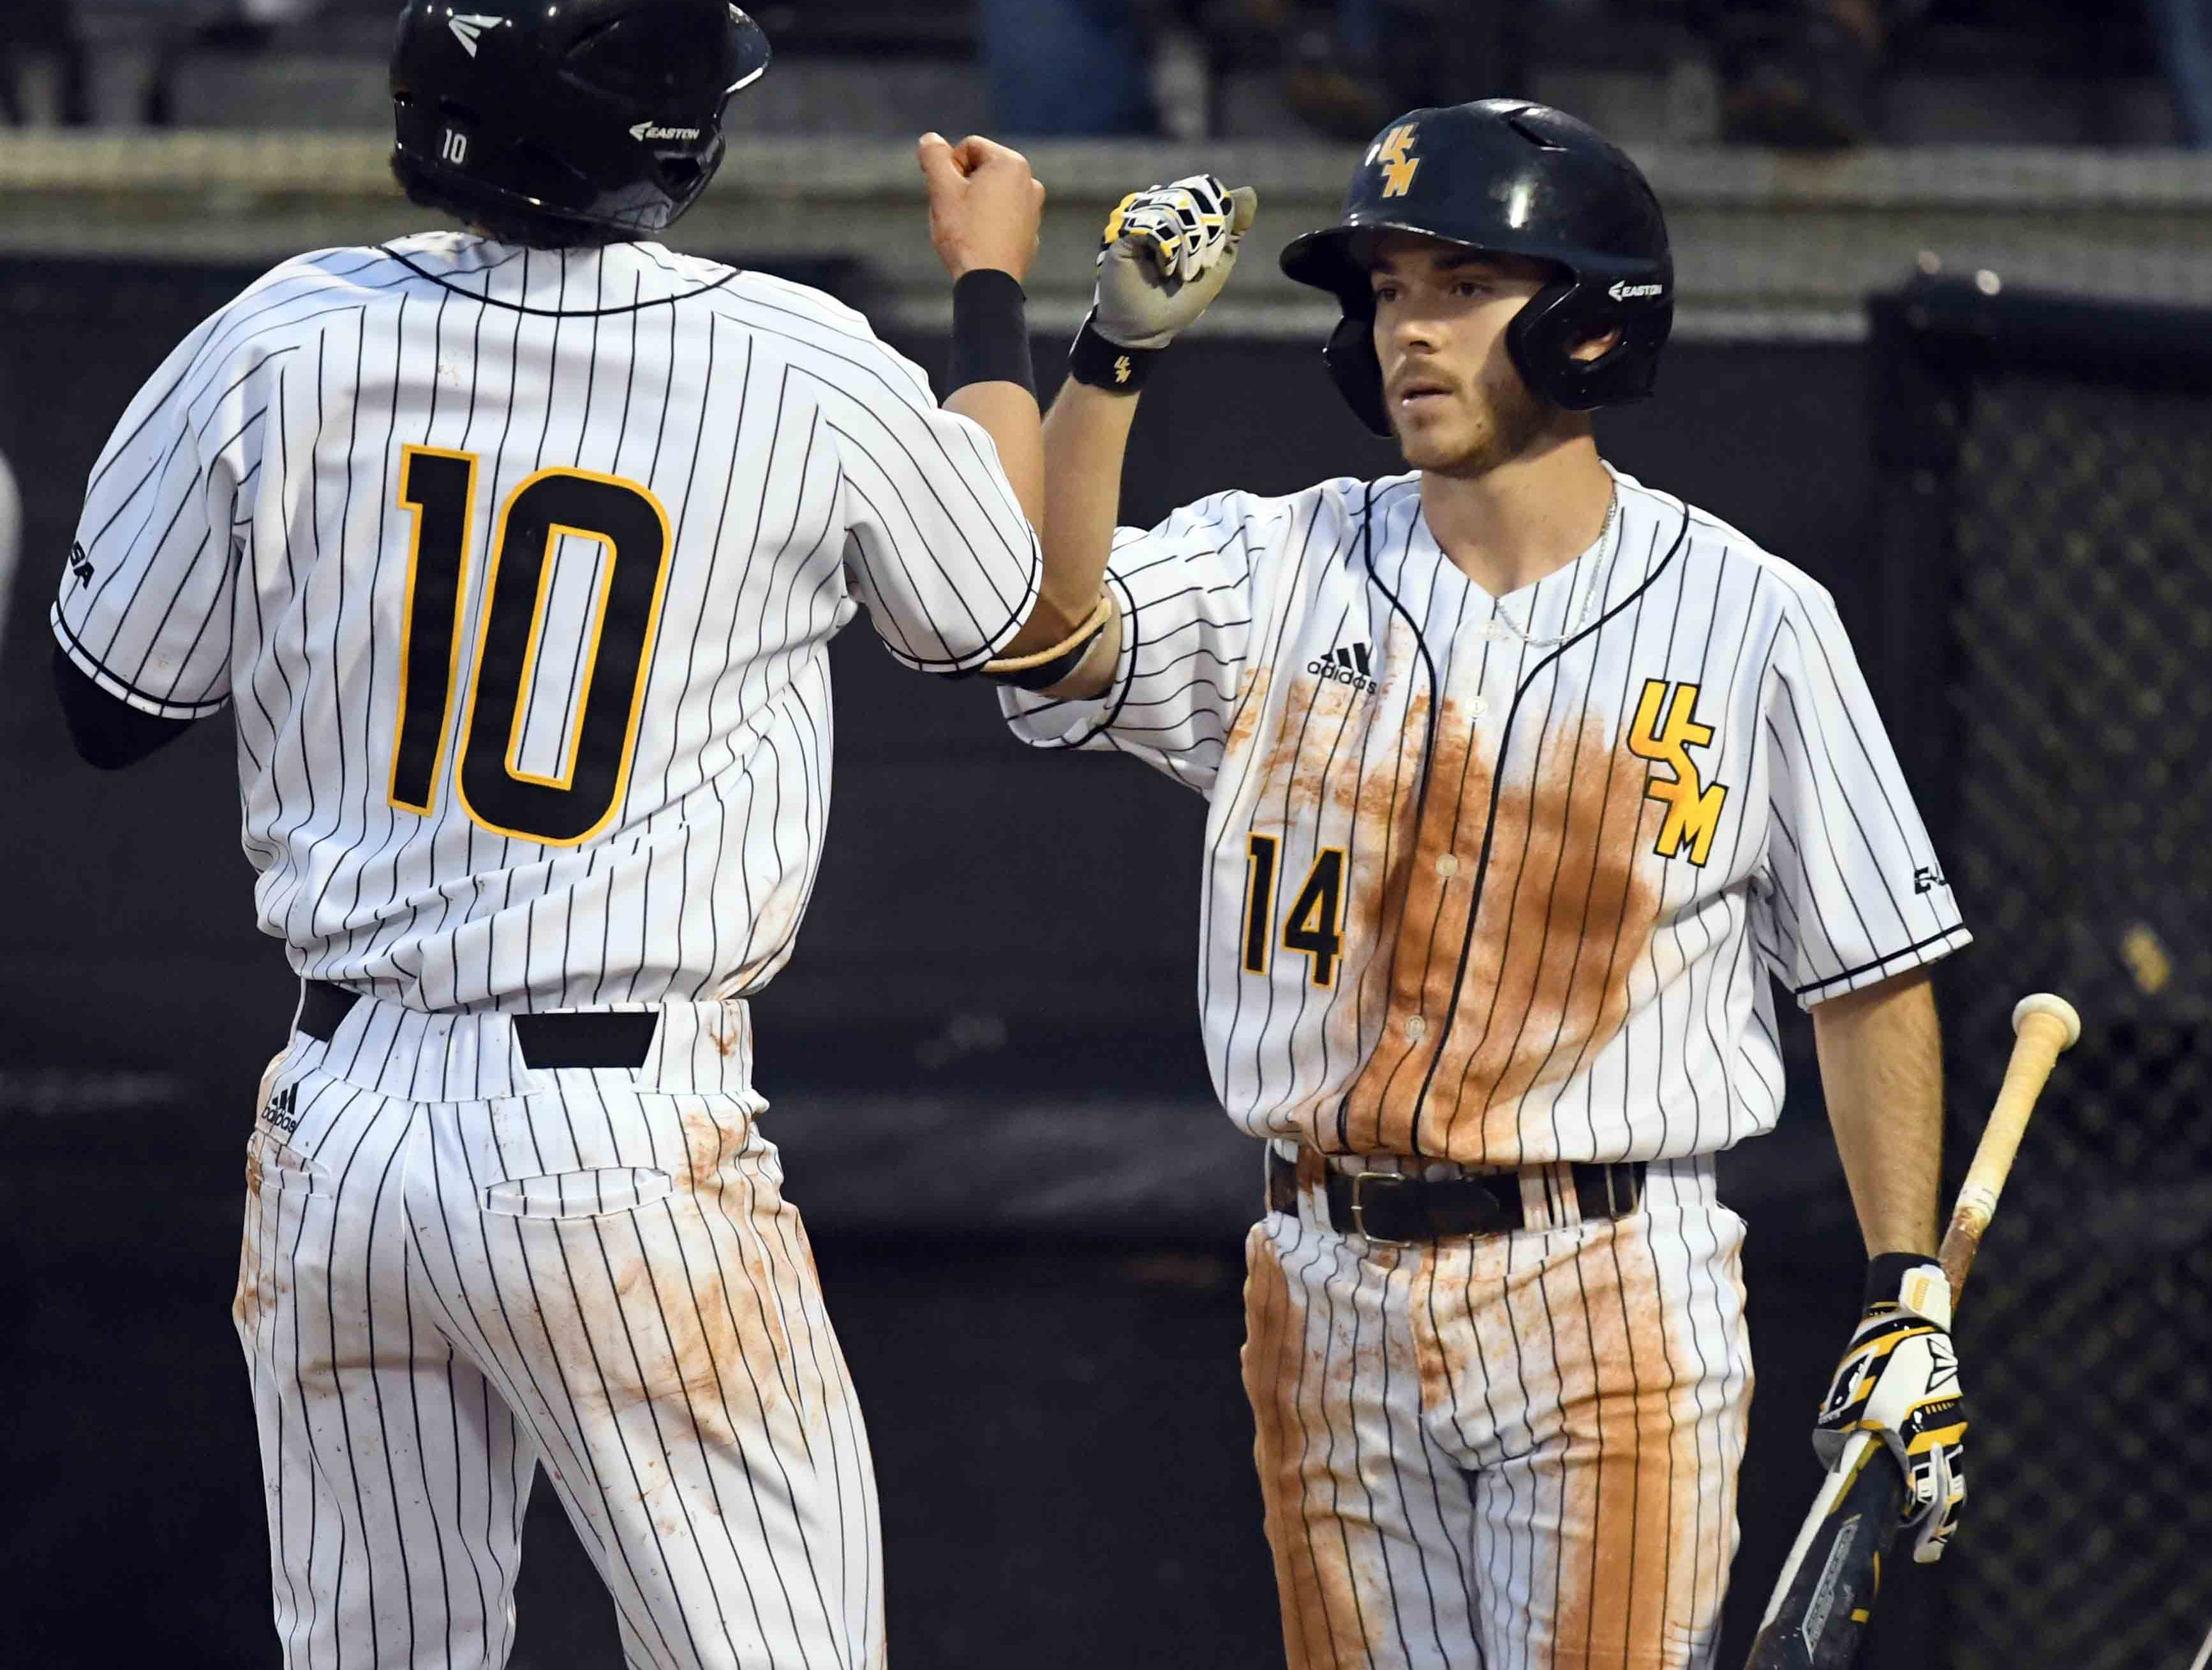 Southern Miss' Gabe Montenegro and Storme Cooper celebrates after a run in the season opener against Purdue on Friday, February 15, 2019.